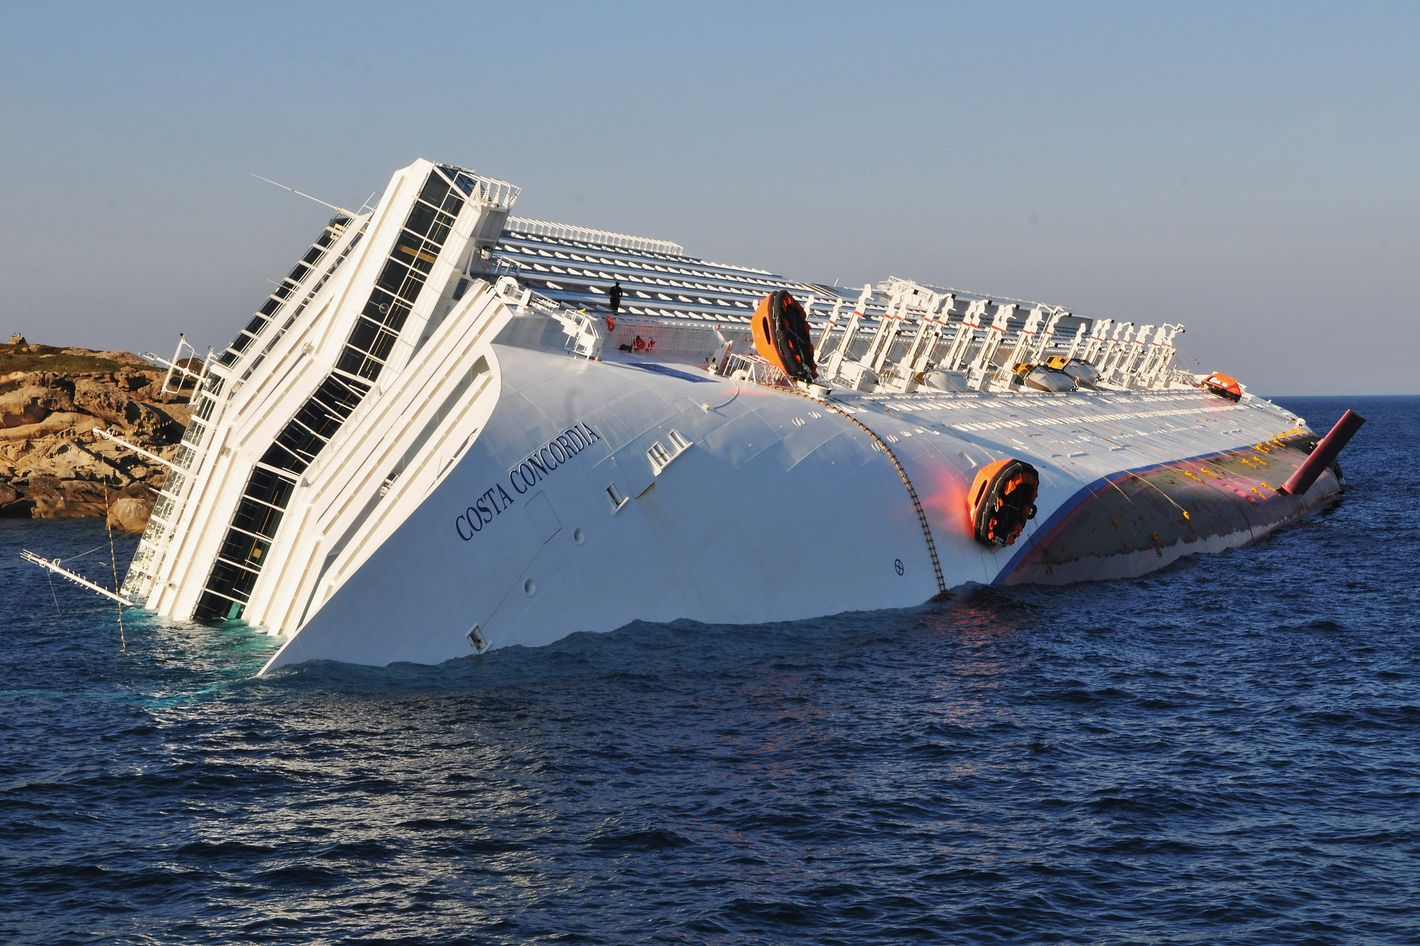 GIGLIO PORTO, ITALY - JANUARY 14:  The cruise ship Costa Concordia lies stricken off the shore of the island of Giglio, on January 14, 2012 in Giglio Porto, Italy. More than four thousand people were on board when the ship hit a sandbank. At least 3 people have been confirmed dead and another 50 are unaccounted for. (Photo by Laura Lezza/Getty Images)